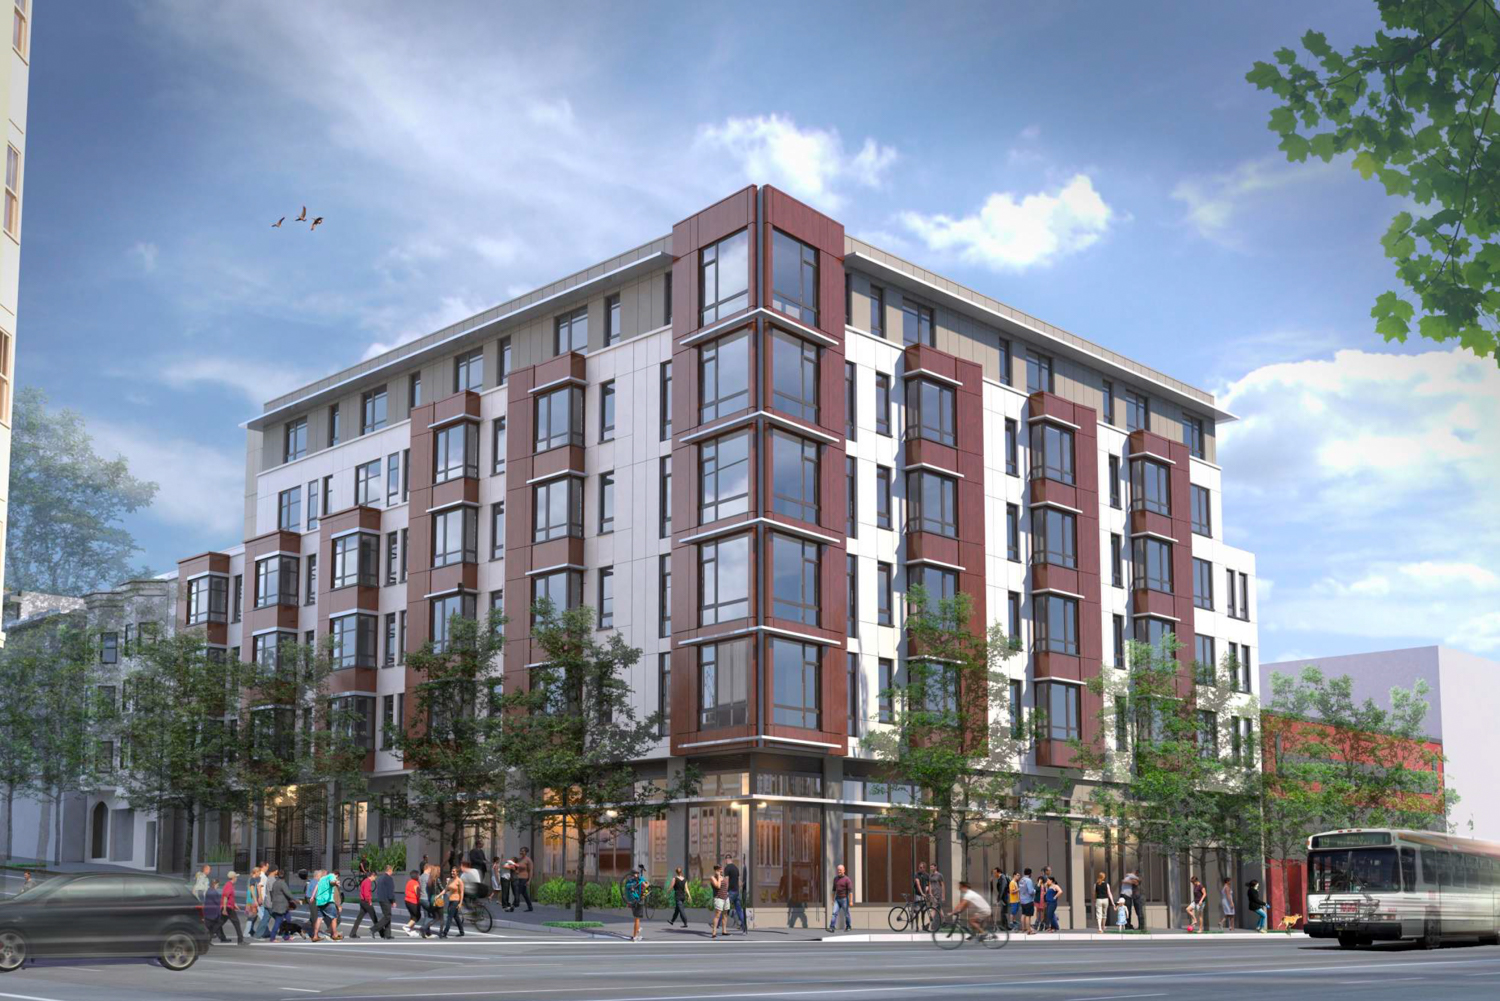 650 Divisadero Street viewed from the corrner of Grove and Divisadero Street, rendering by Ankrom Moisan Architects